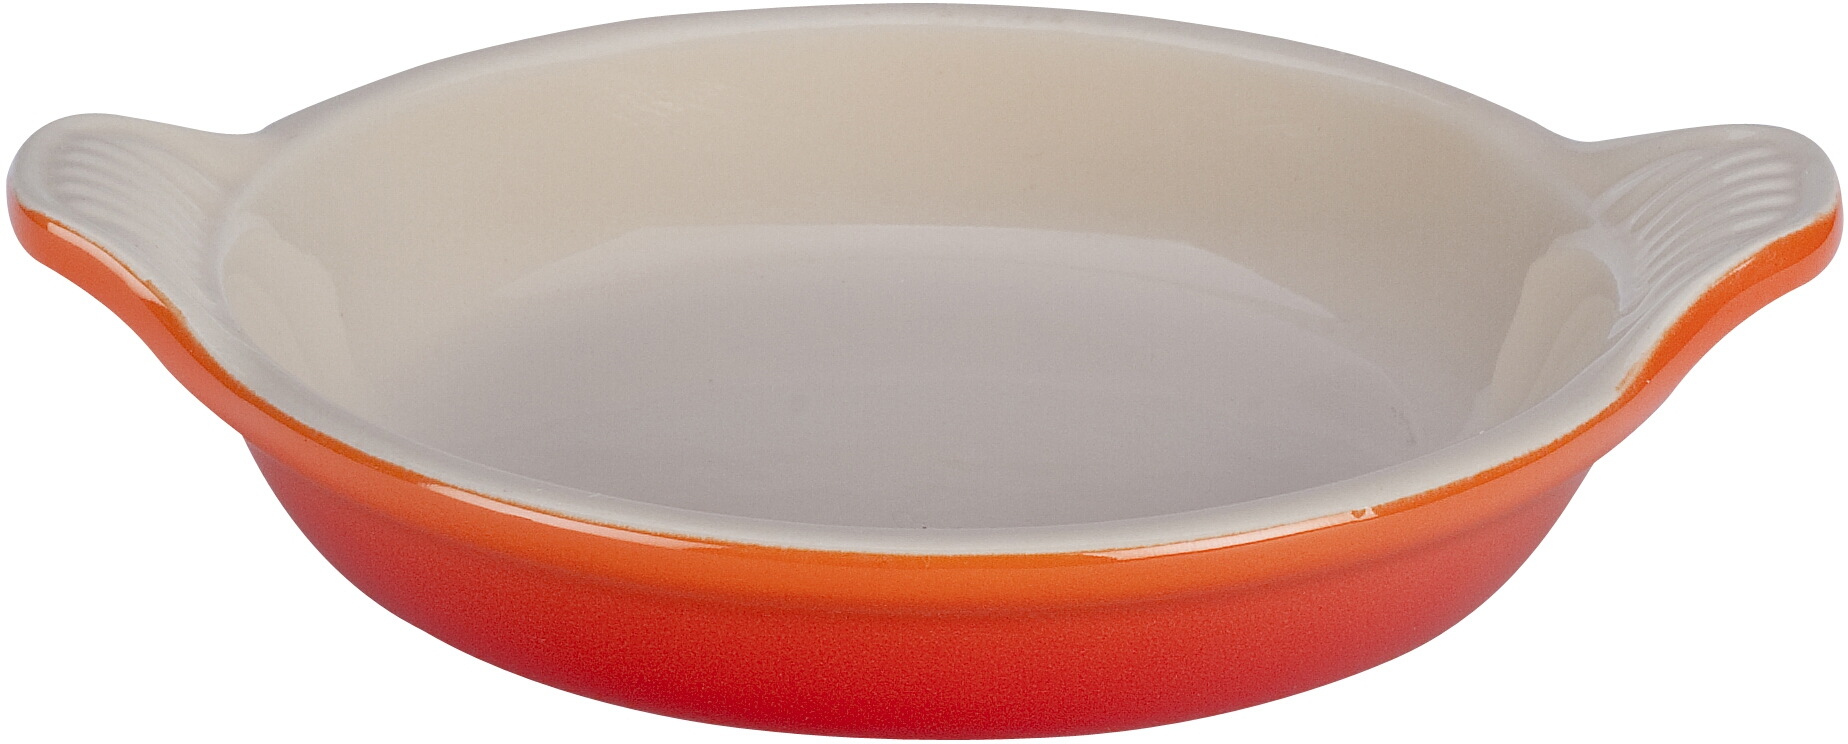 Le Creuset Flame Stoneware 7 Ounce Creme Brulee Dish